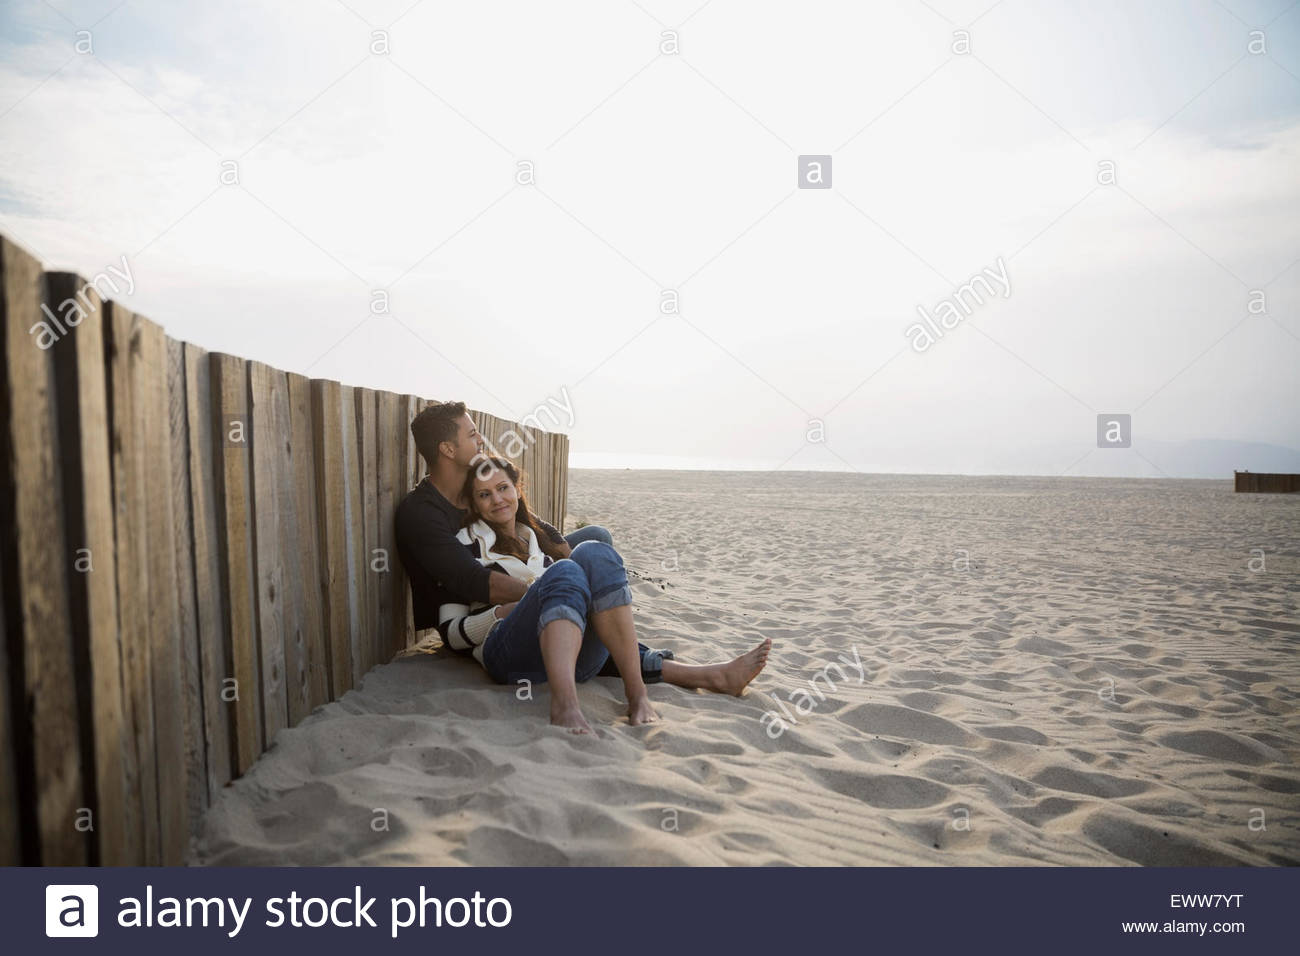 Affectionate couple relaxing at beach wall - Stock Image